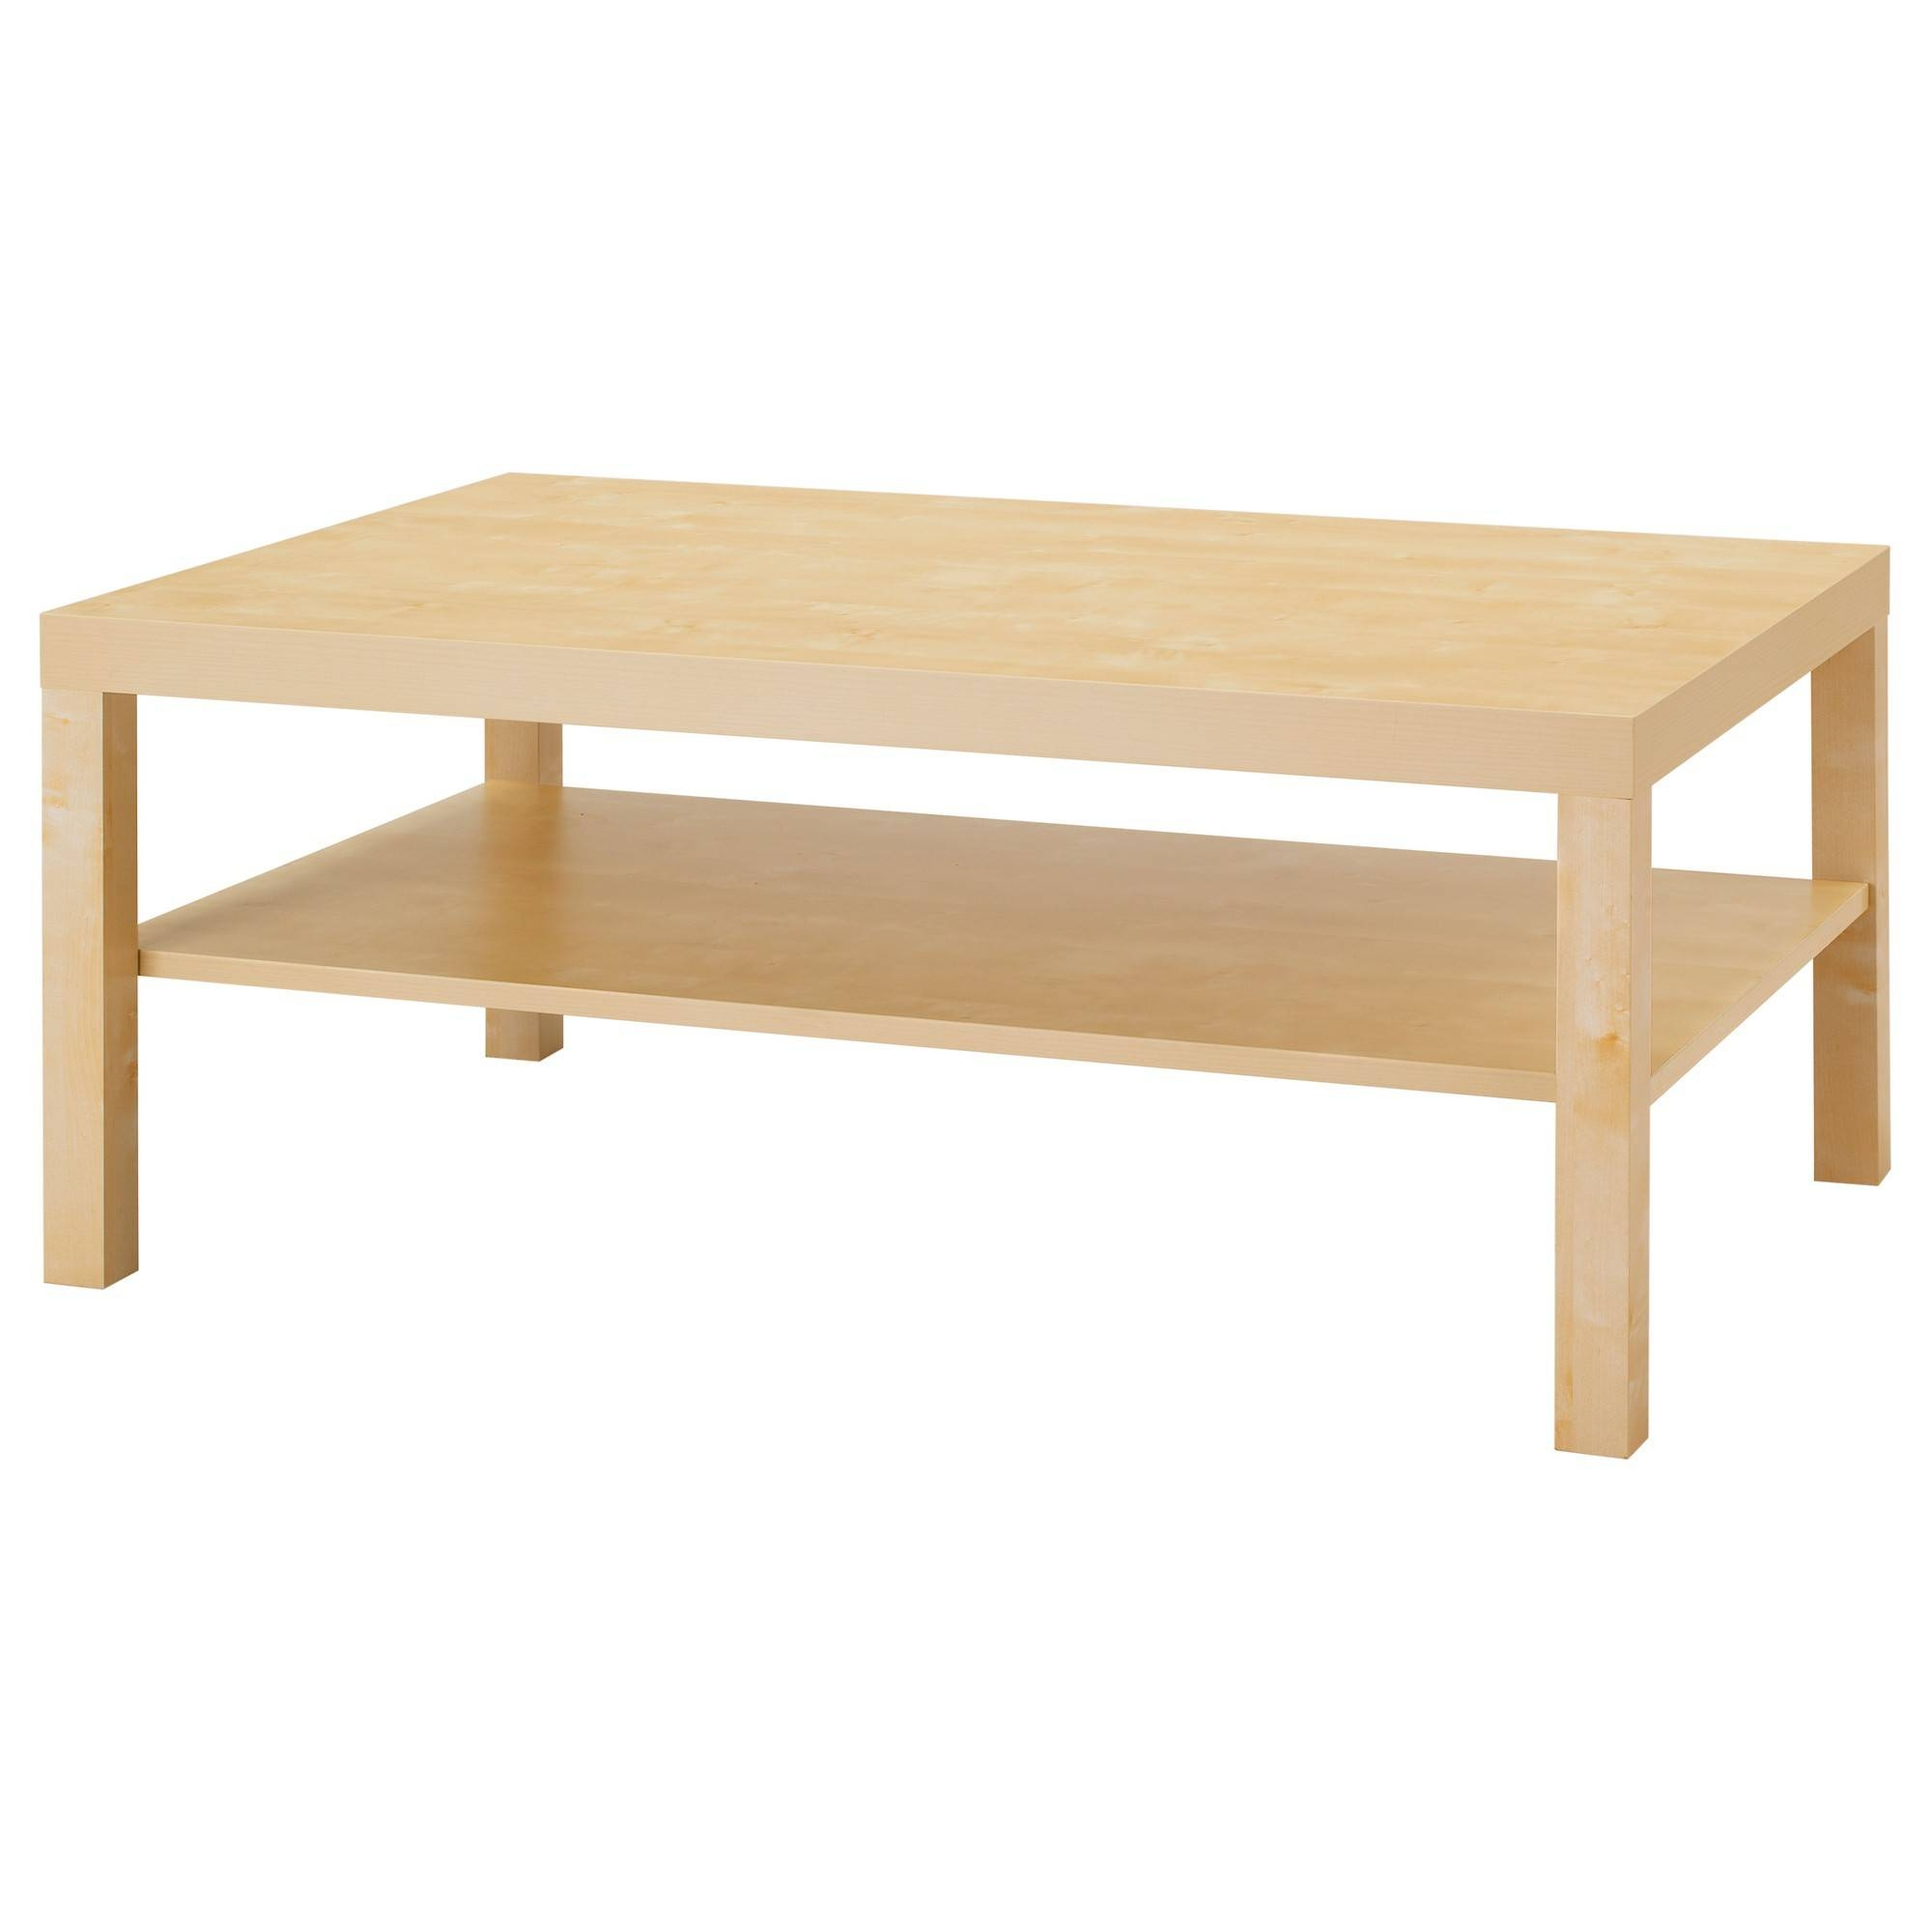 Furniture. Coffee Table Cheap: Cream Rectangle Modern Unfinished for Cream And Oak Coffee Tables (Image 16 of 30)